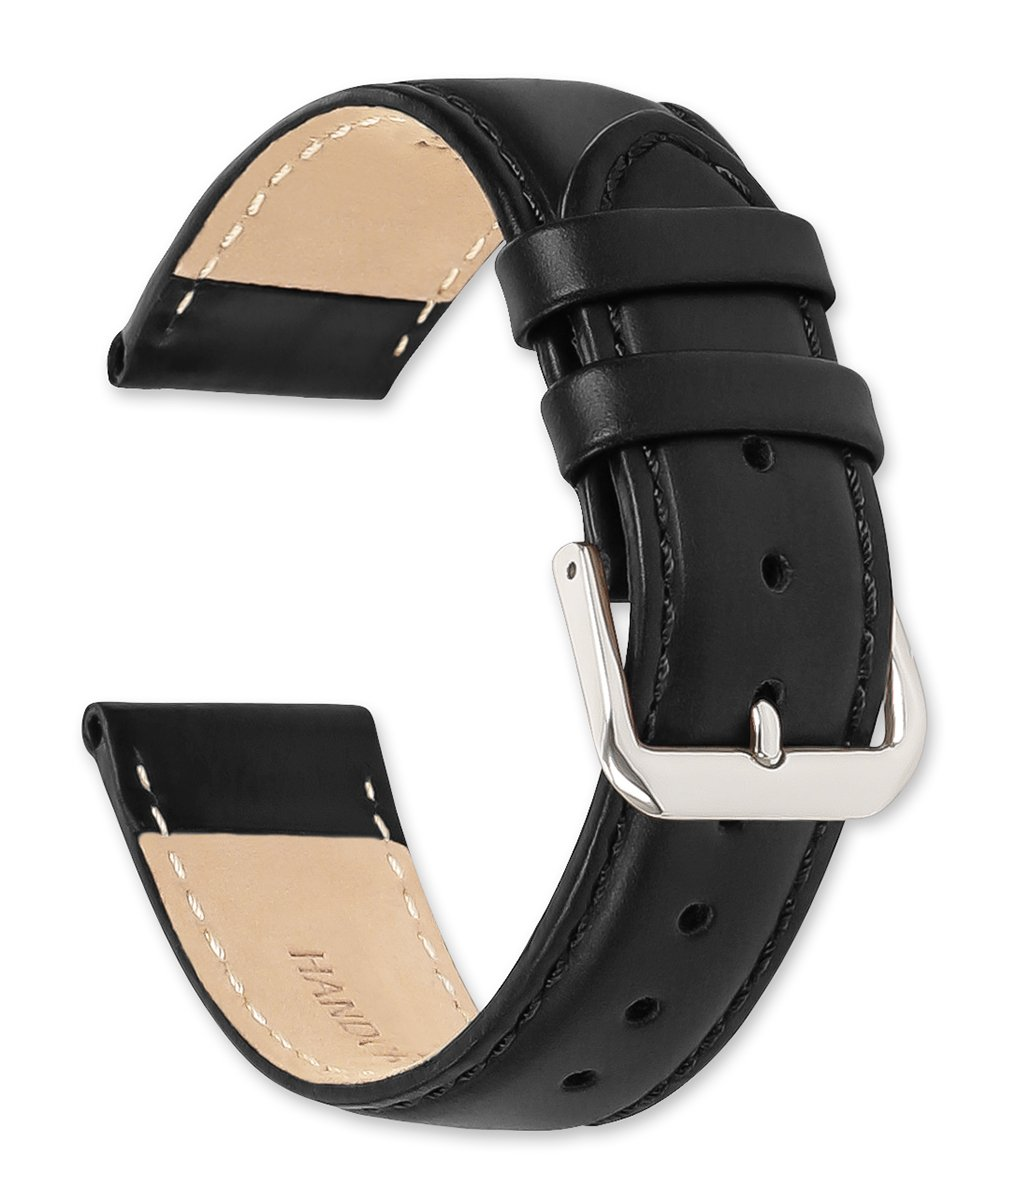 deBeer Stage Coach Leather Watch Strap/Watch Band - Choice of Color & Width - 10 12 14 15 16 17 18 19 or 20mm